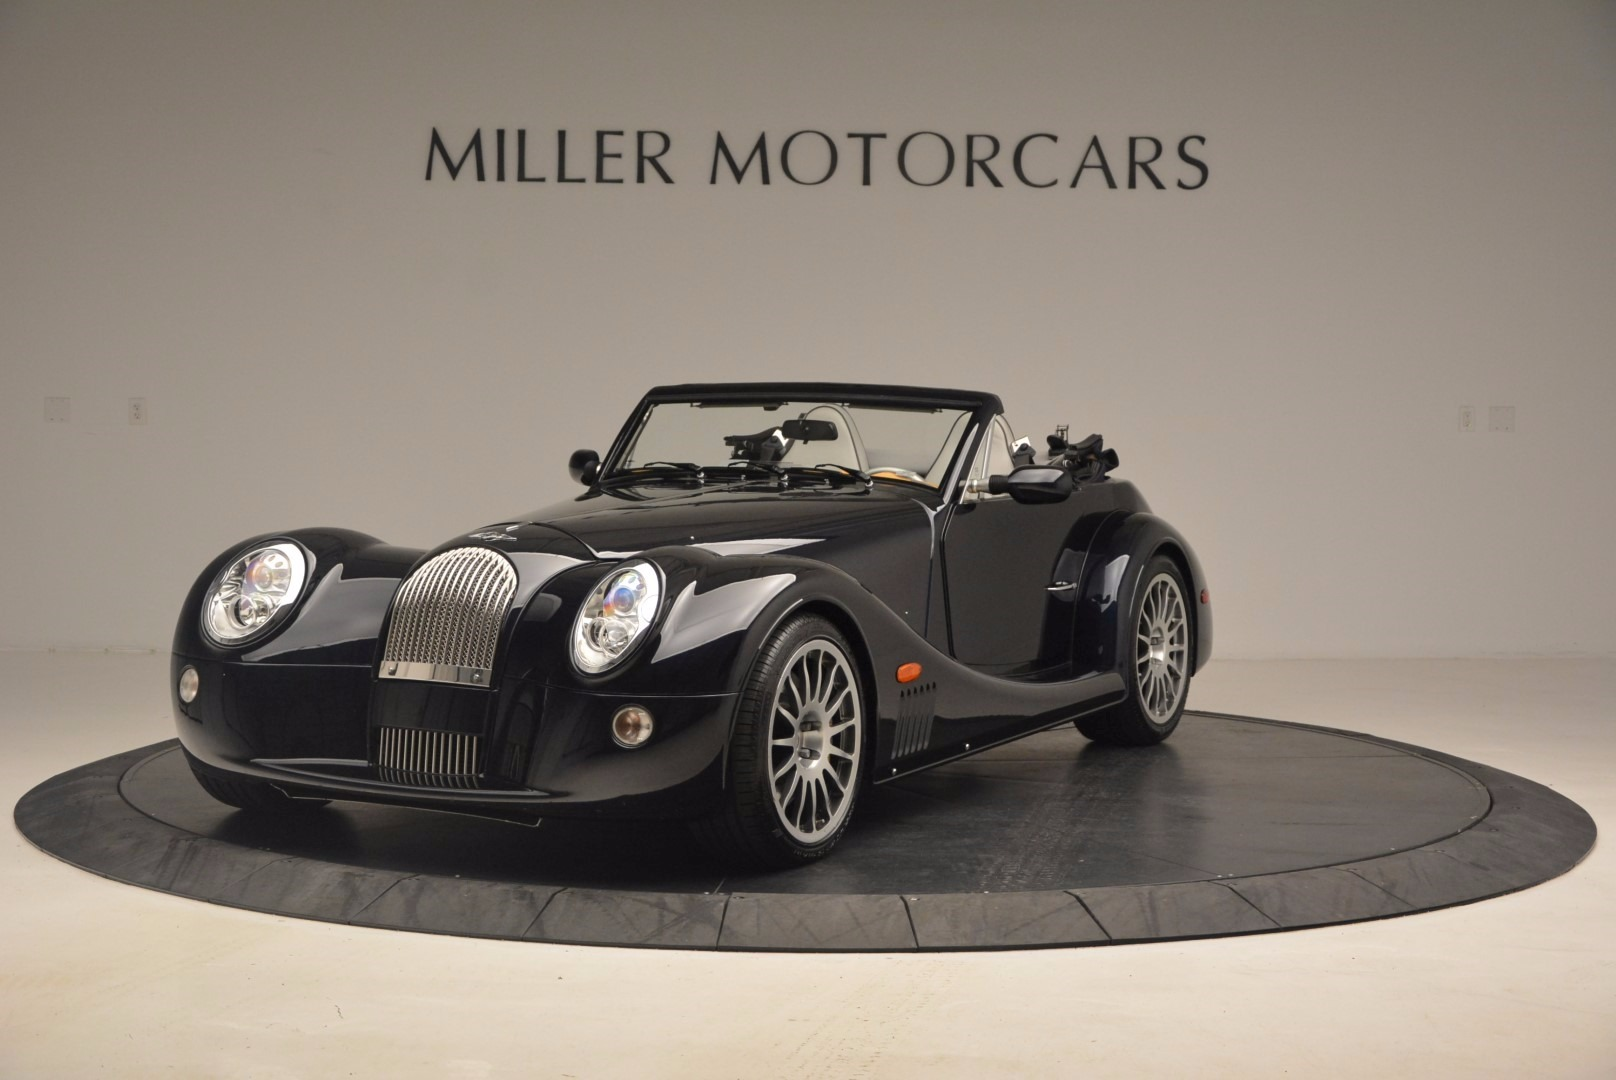 Used 2007 Morgan Aero 8 for sale Sold at Aston Martin of Greenwich in Greenwich CT 06830 1